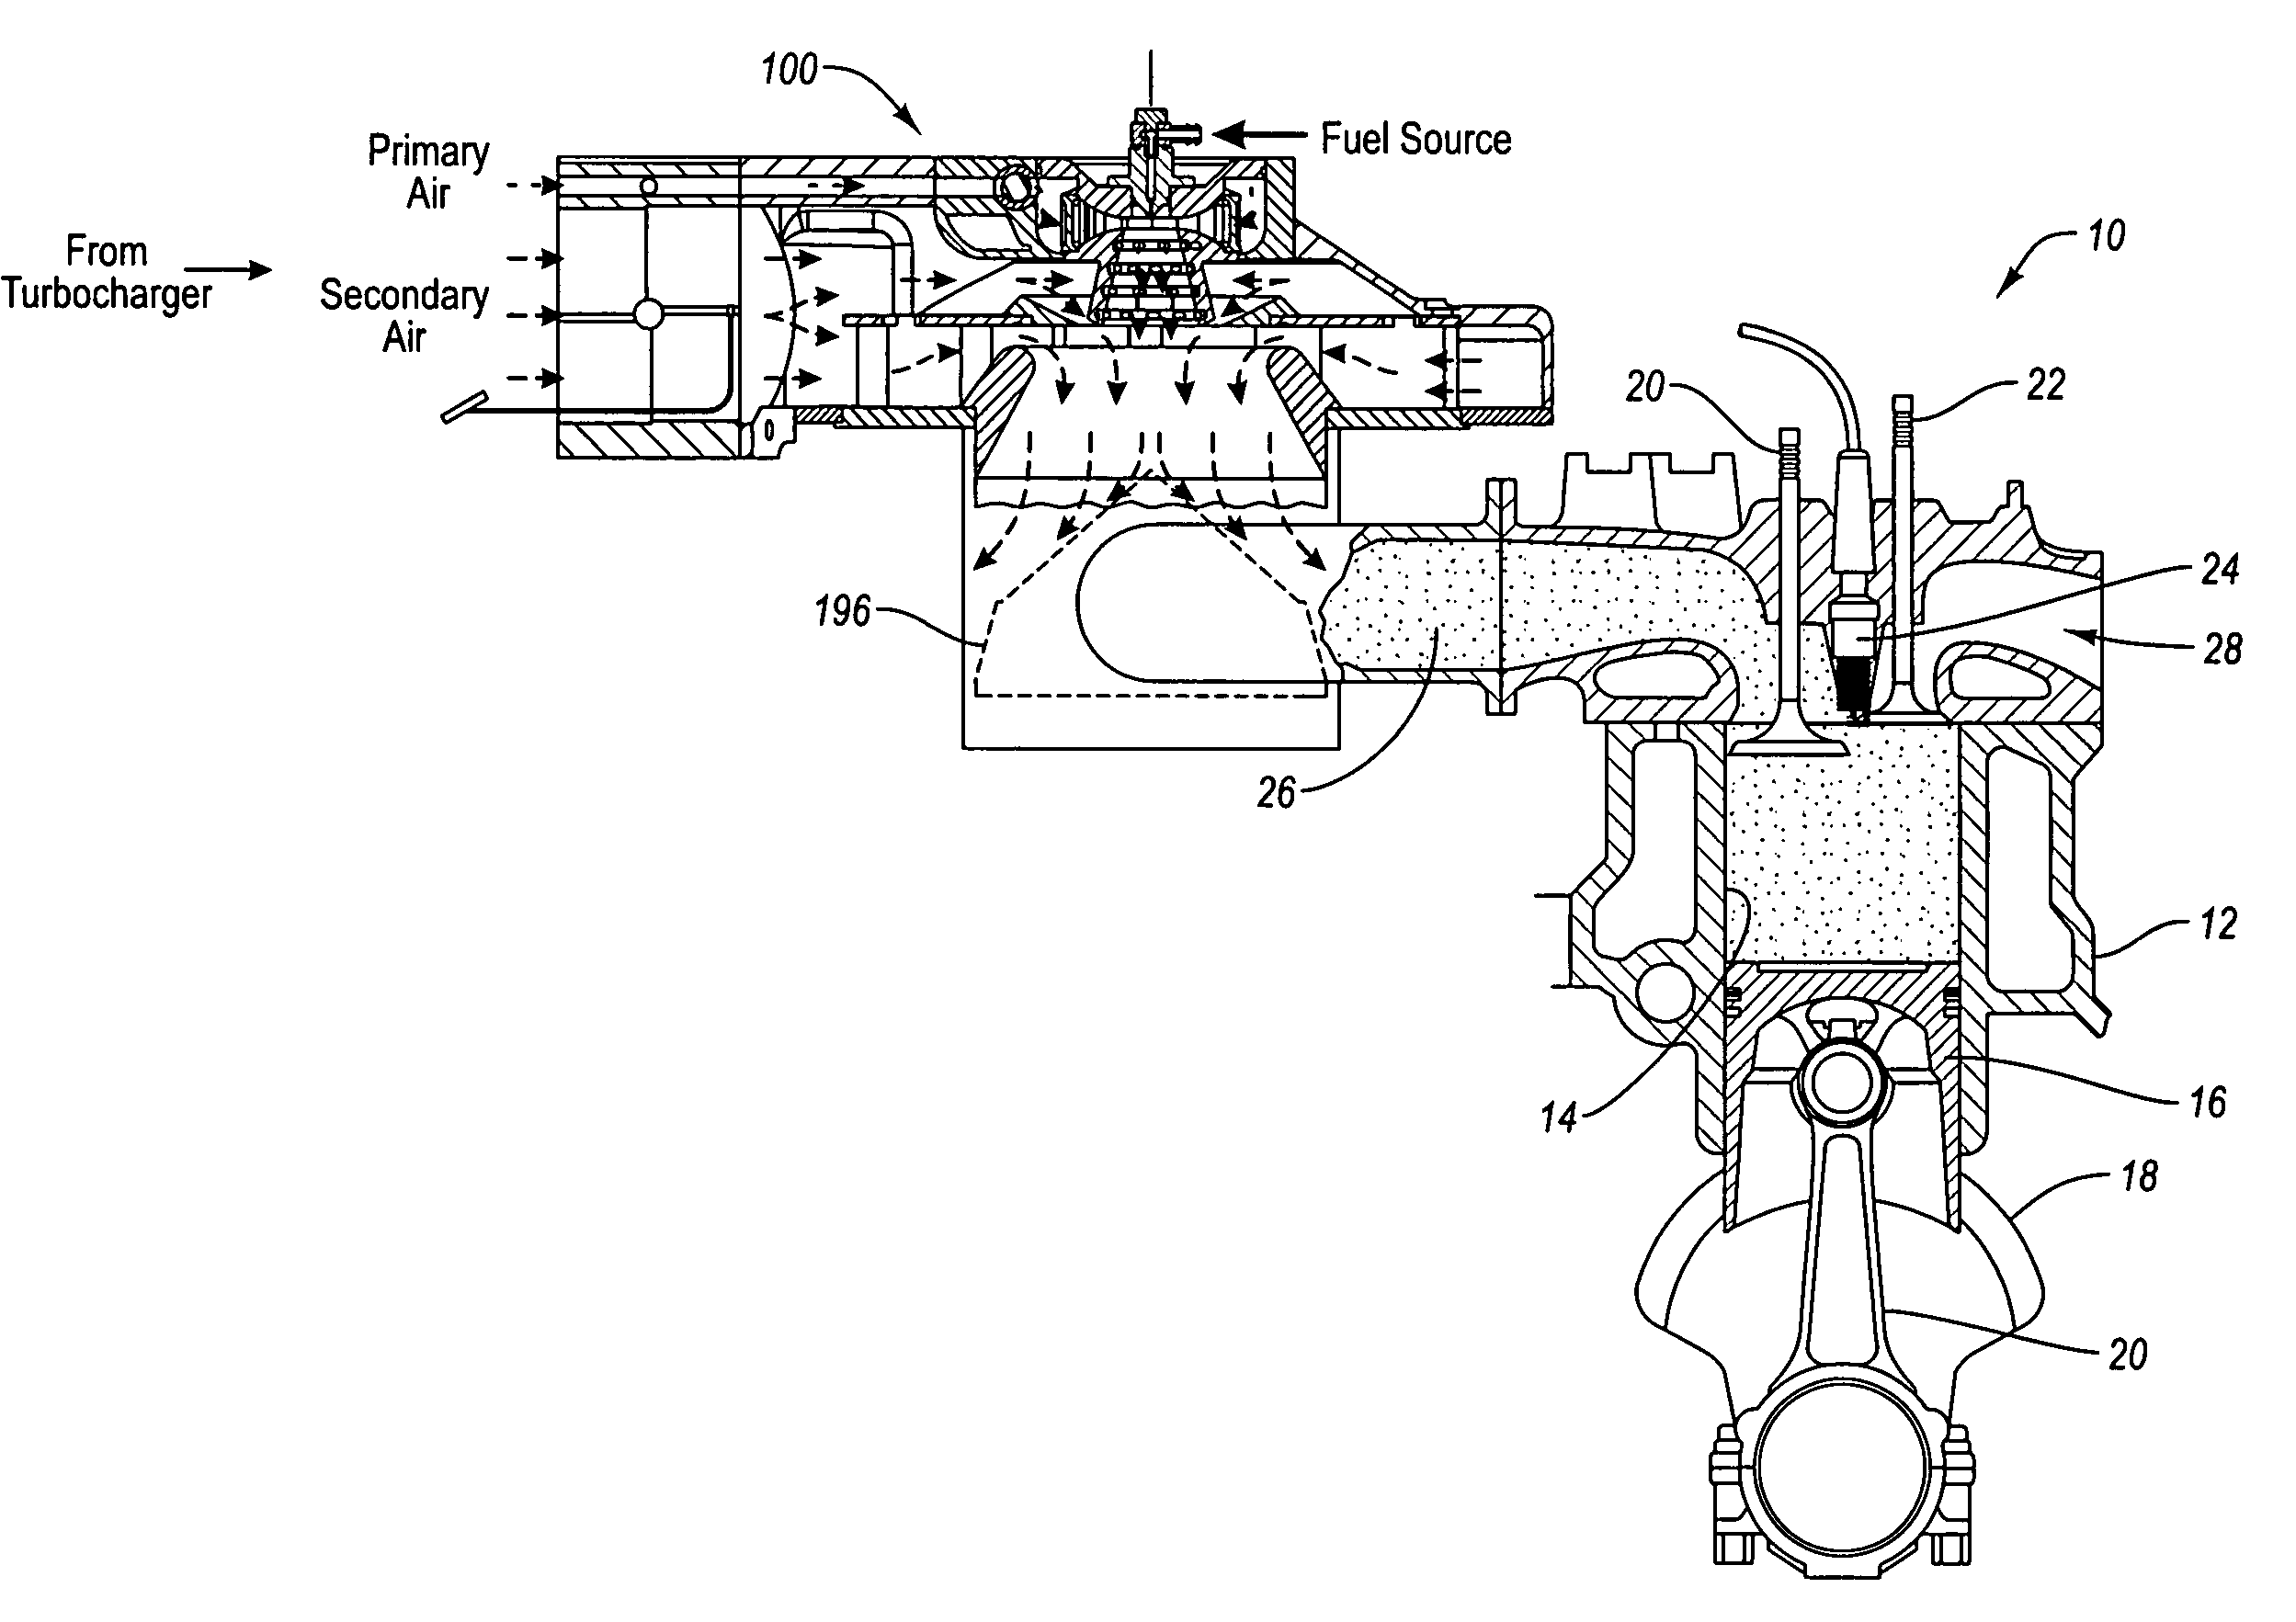 Patent Us7500464 Fuel Processor Apparatus And Method For A Diesel 200 Isuzu Engine Vacuum Diagram Drawing